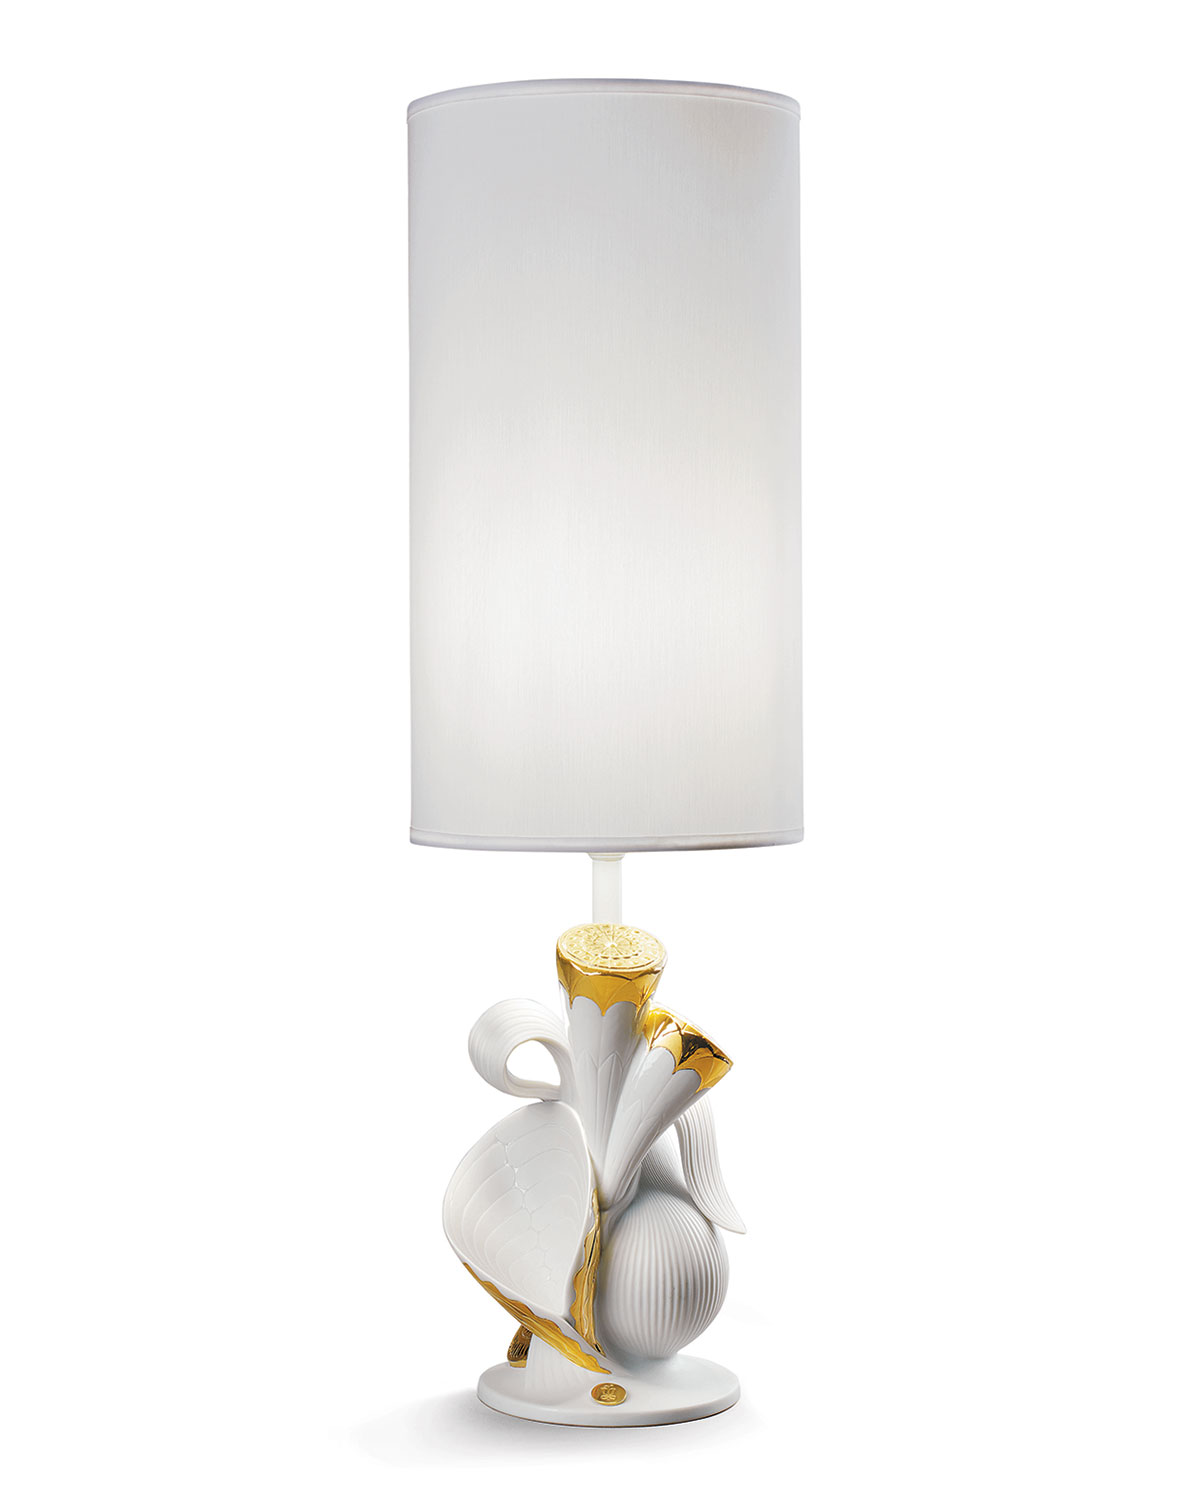 Lladrò NATUROFANTASTIC LIVING NATURE TABLE LAMP